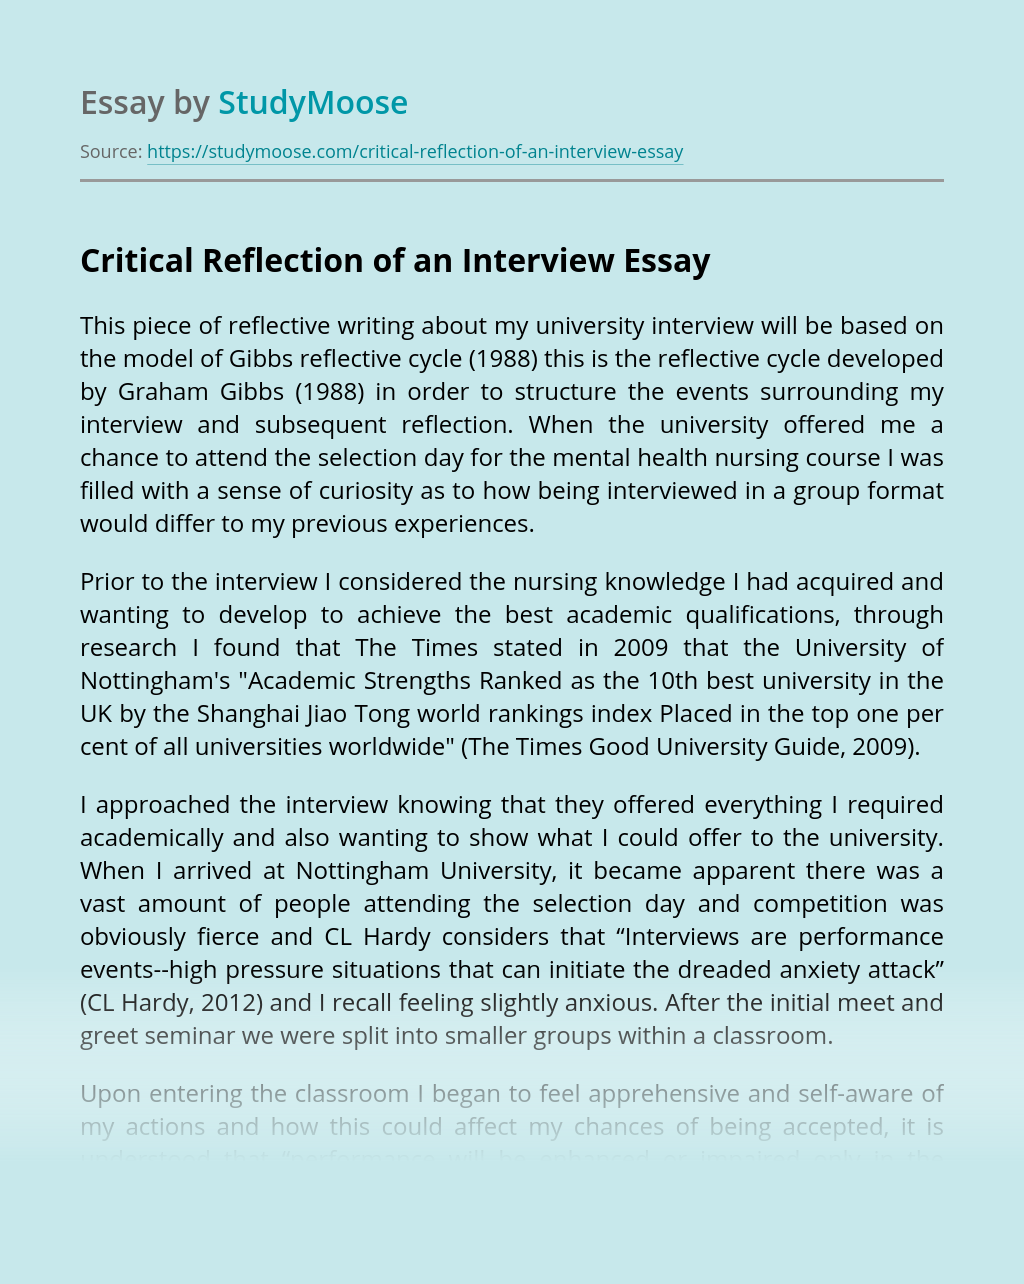 Critical Reflection of an Interview